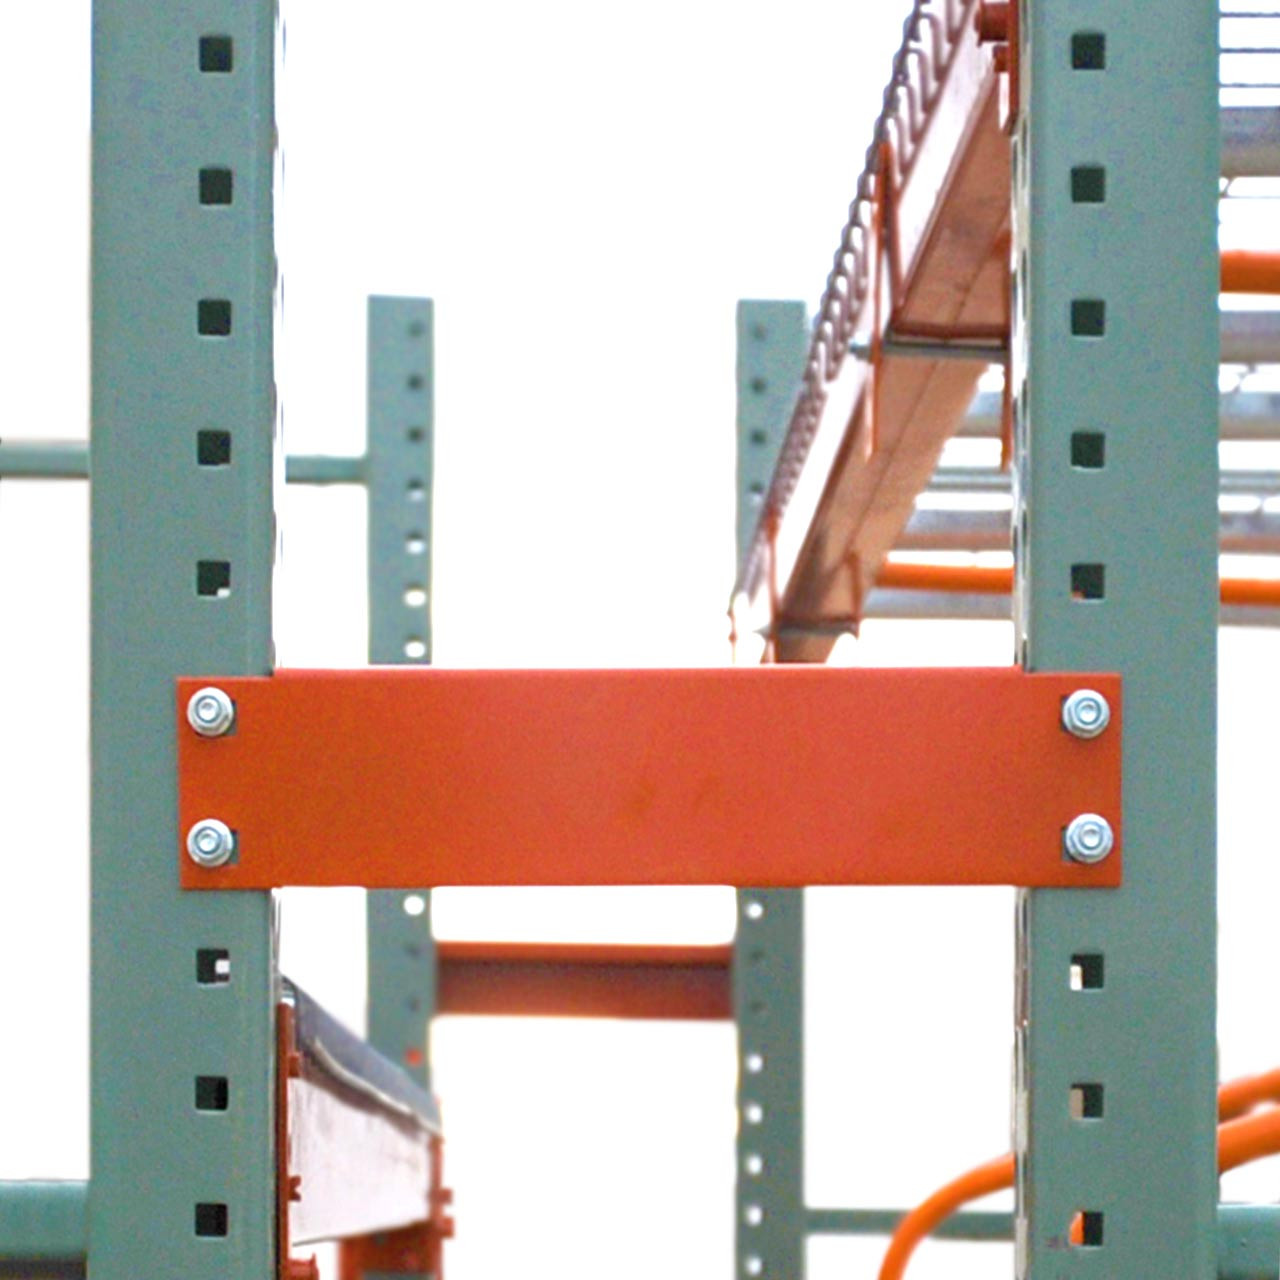 Row spacers add stability and consistent spacing between pallet racks